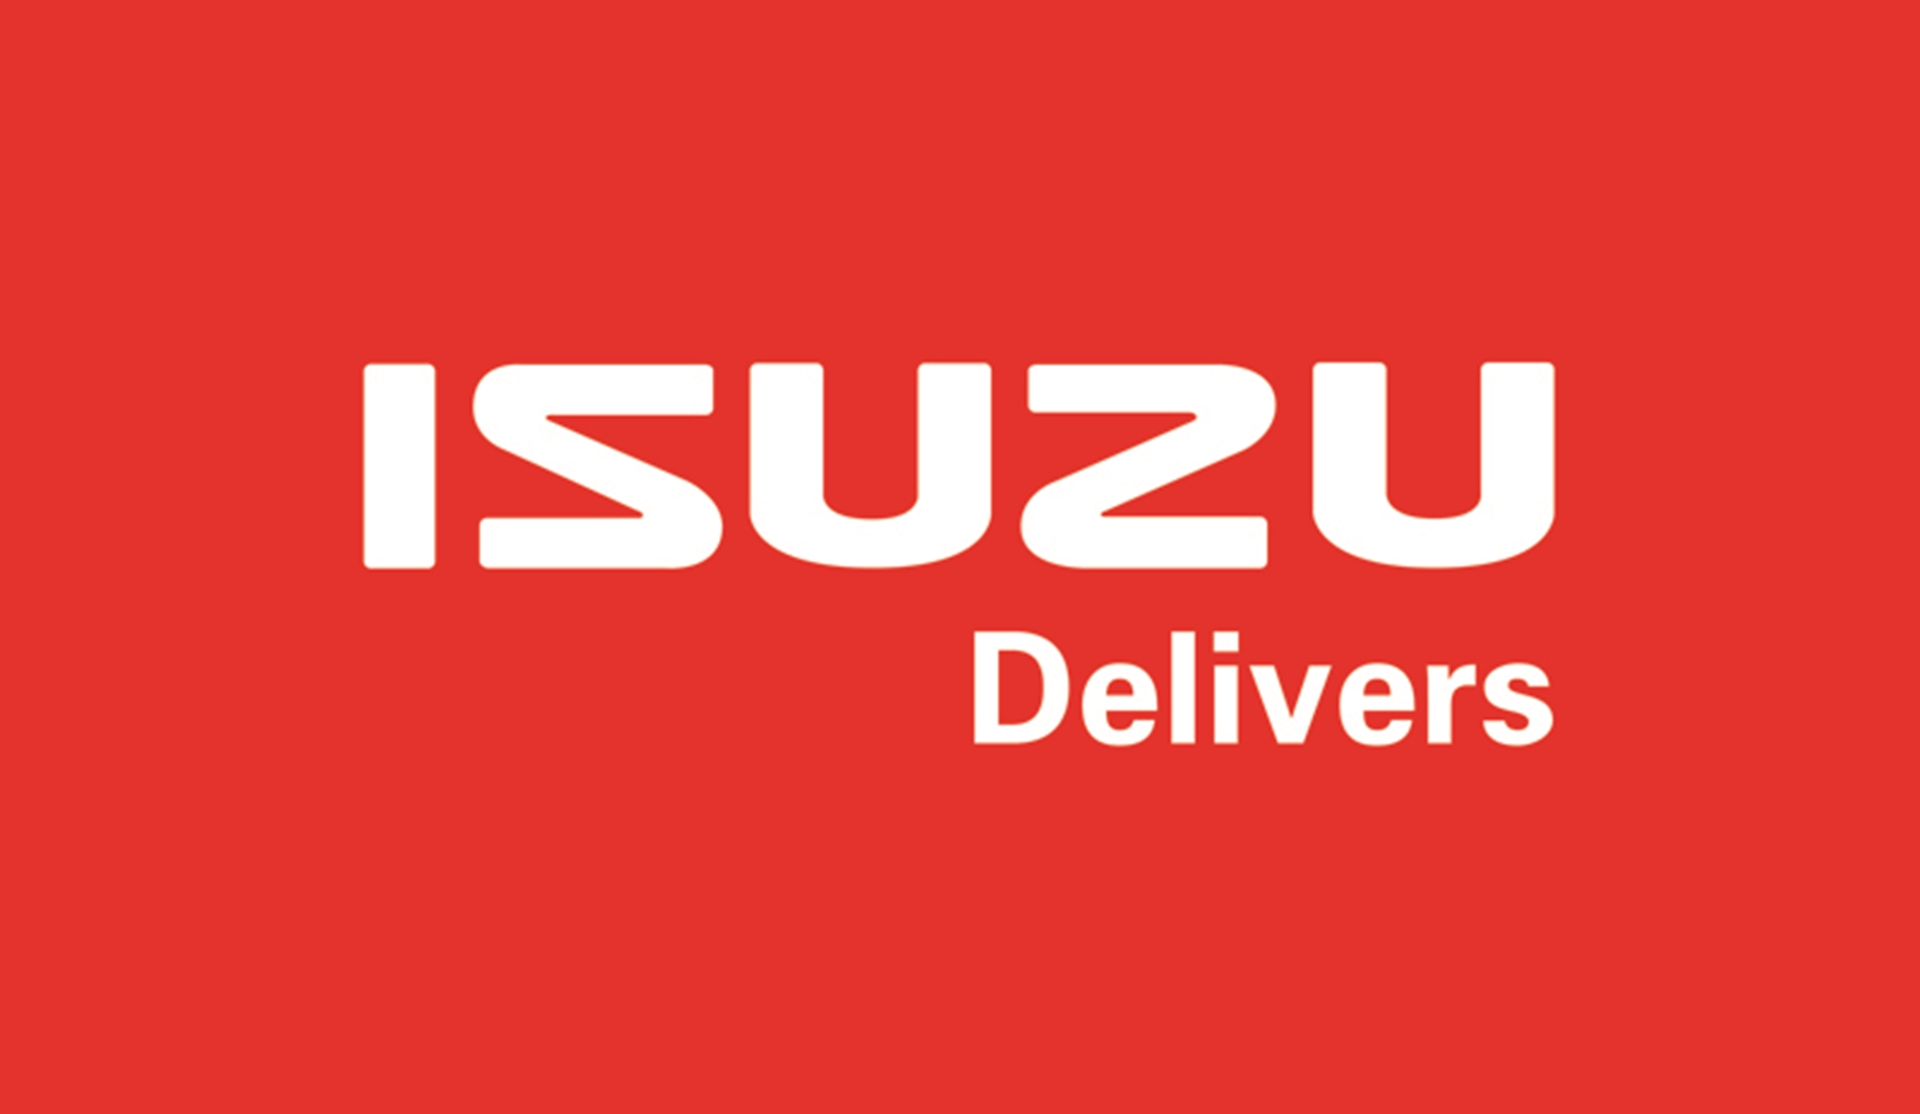 Isuzu Delivers